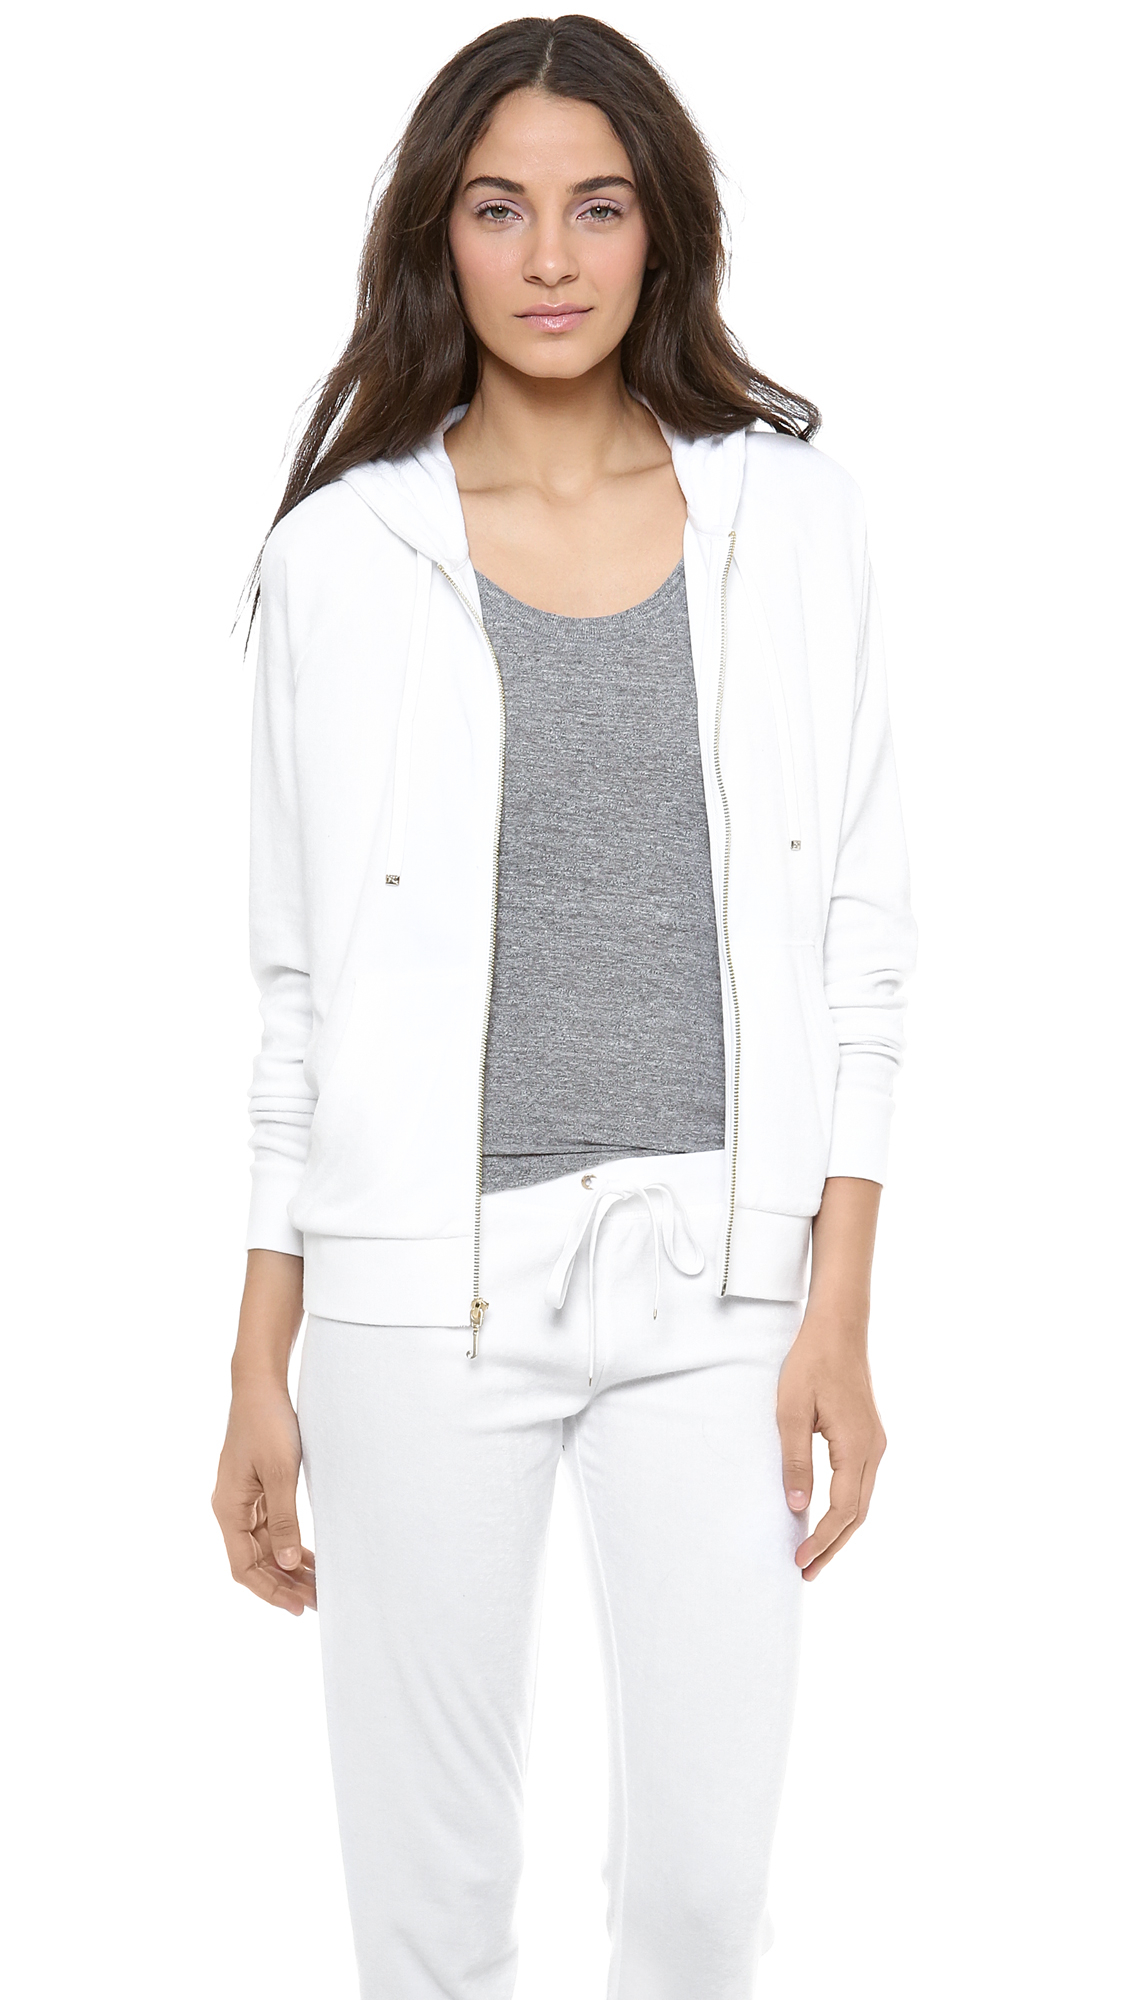 Lyst - Juicy Couture Micro Terry Relaxed Jacket in White